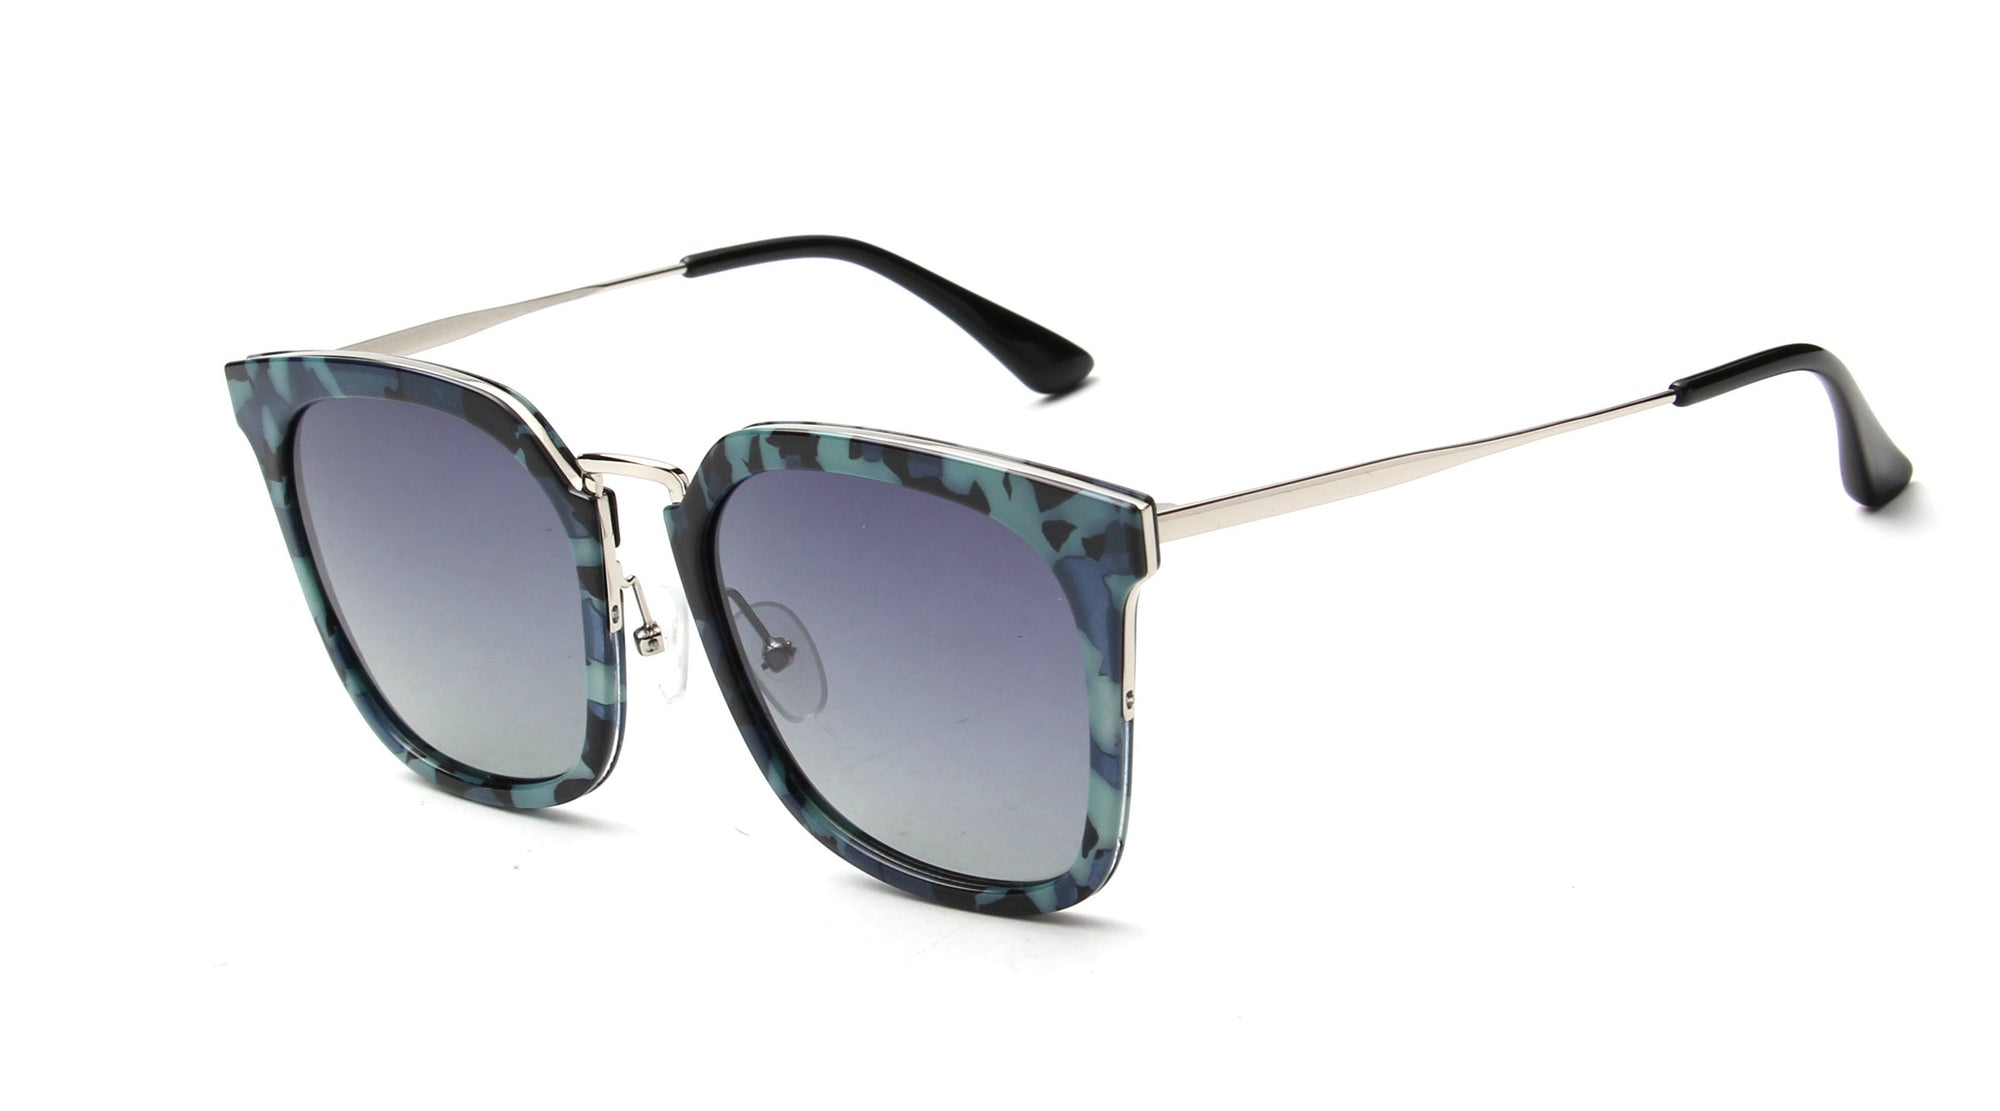 LAT-T30052 - Classic Polarized Square Fashion Sunglasses - Iris Fashion Inc. | Wholesale Sunglasses and Glasses